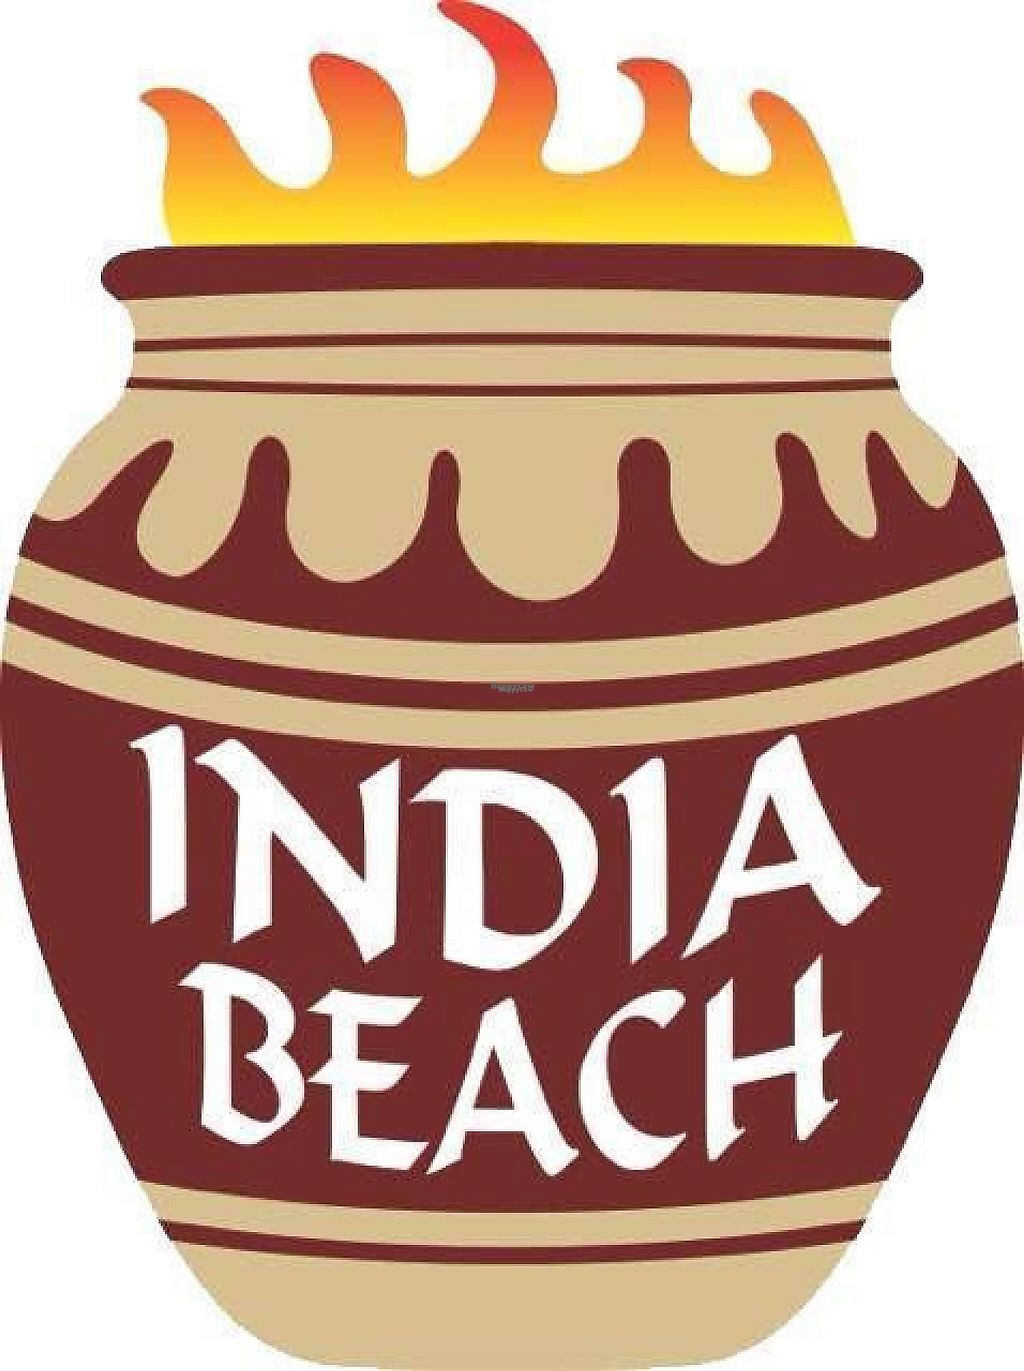 "Photo of India Beach  by <a href=""/members/profile/community"">community</a> <br/>India Beach <br/> March 14, 2017  - <a href='/contact/abuse/image/73493/236281'>Report</a>"